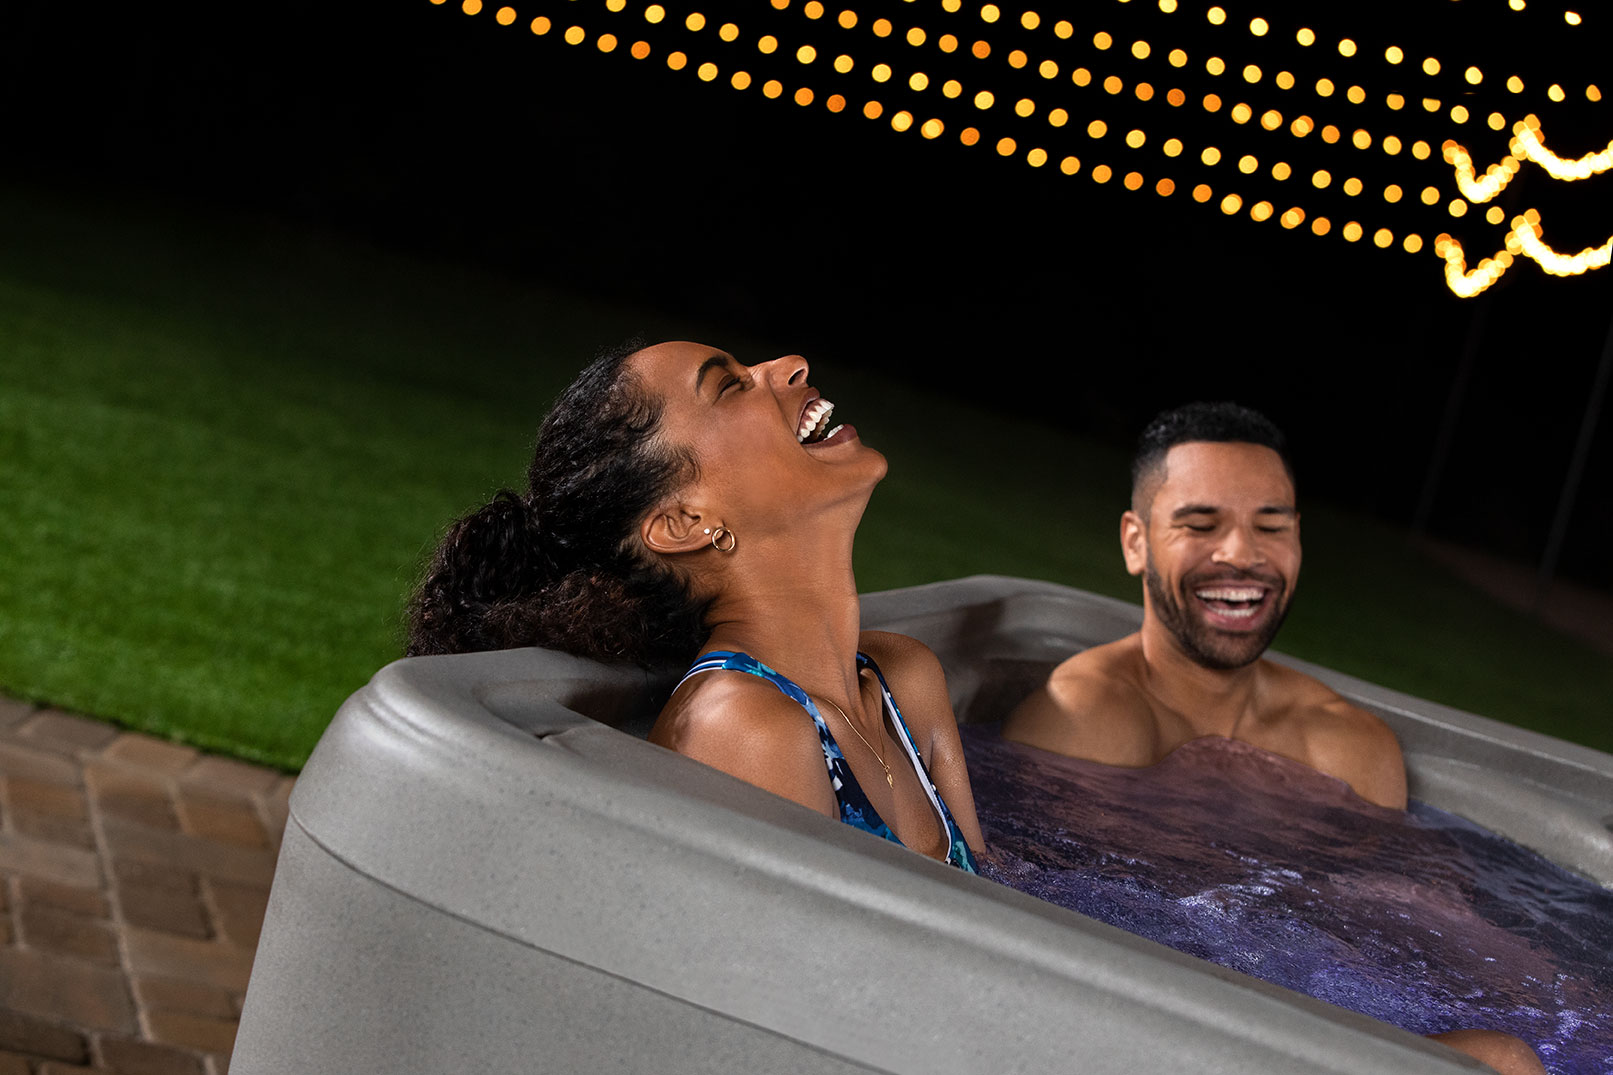 Young couple laughing and enjoying time together in their Plug-N-Play Entice Sport spa.